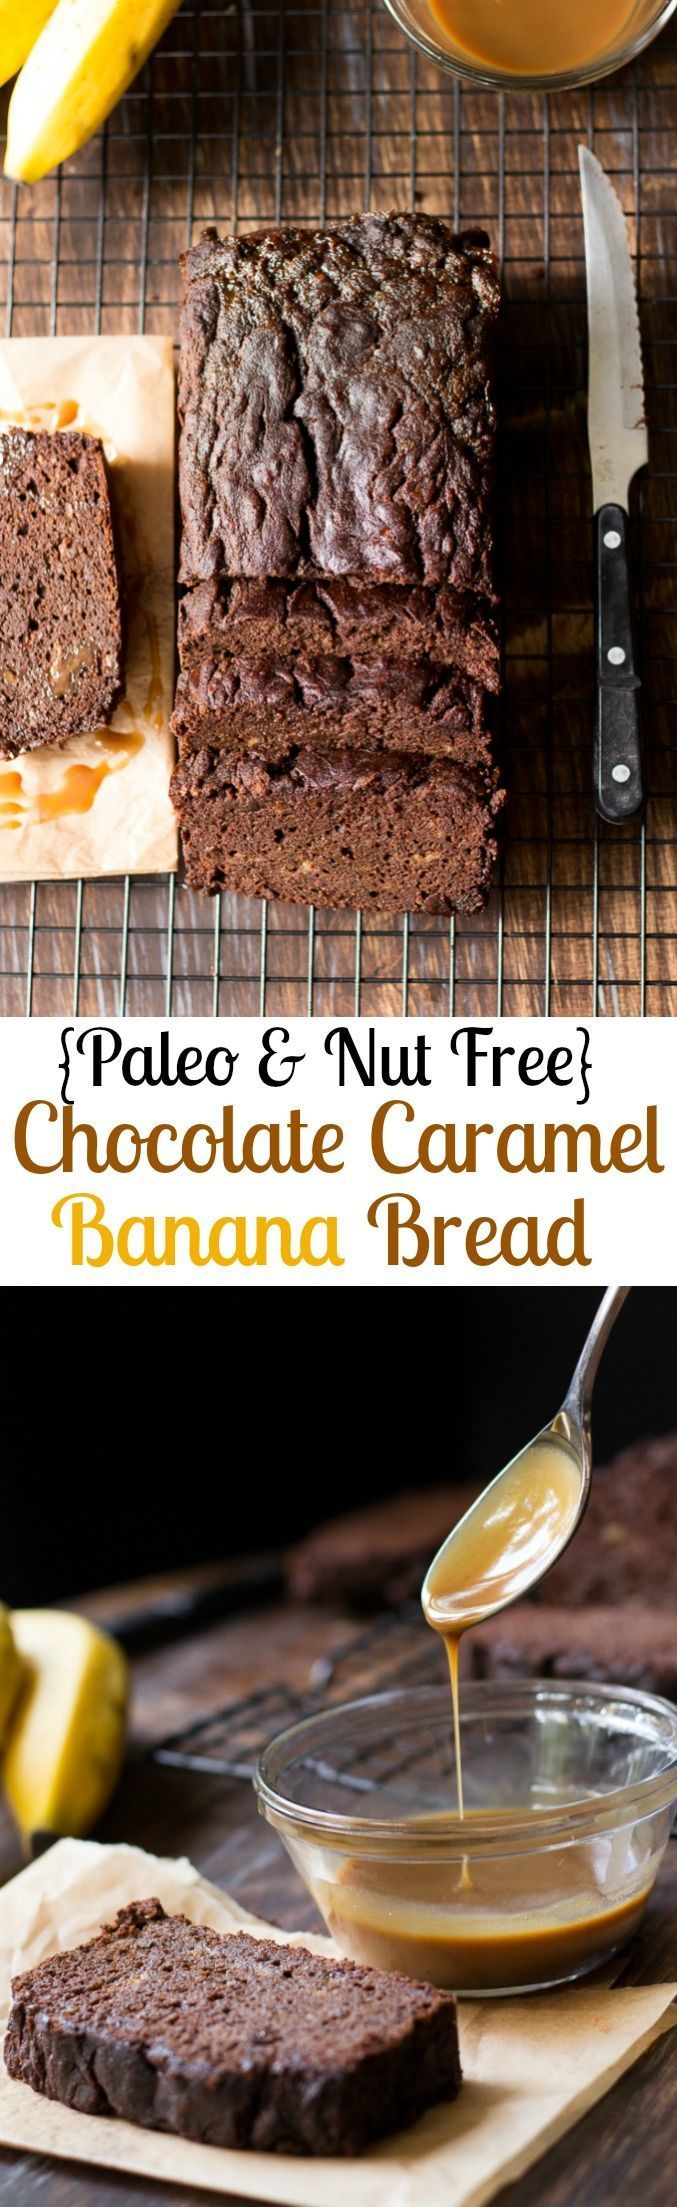 Paleo Sweet Loaves/ Breads on Pinterest | Paleo banana bread, Paleo ...